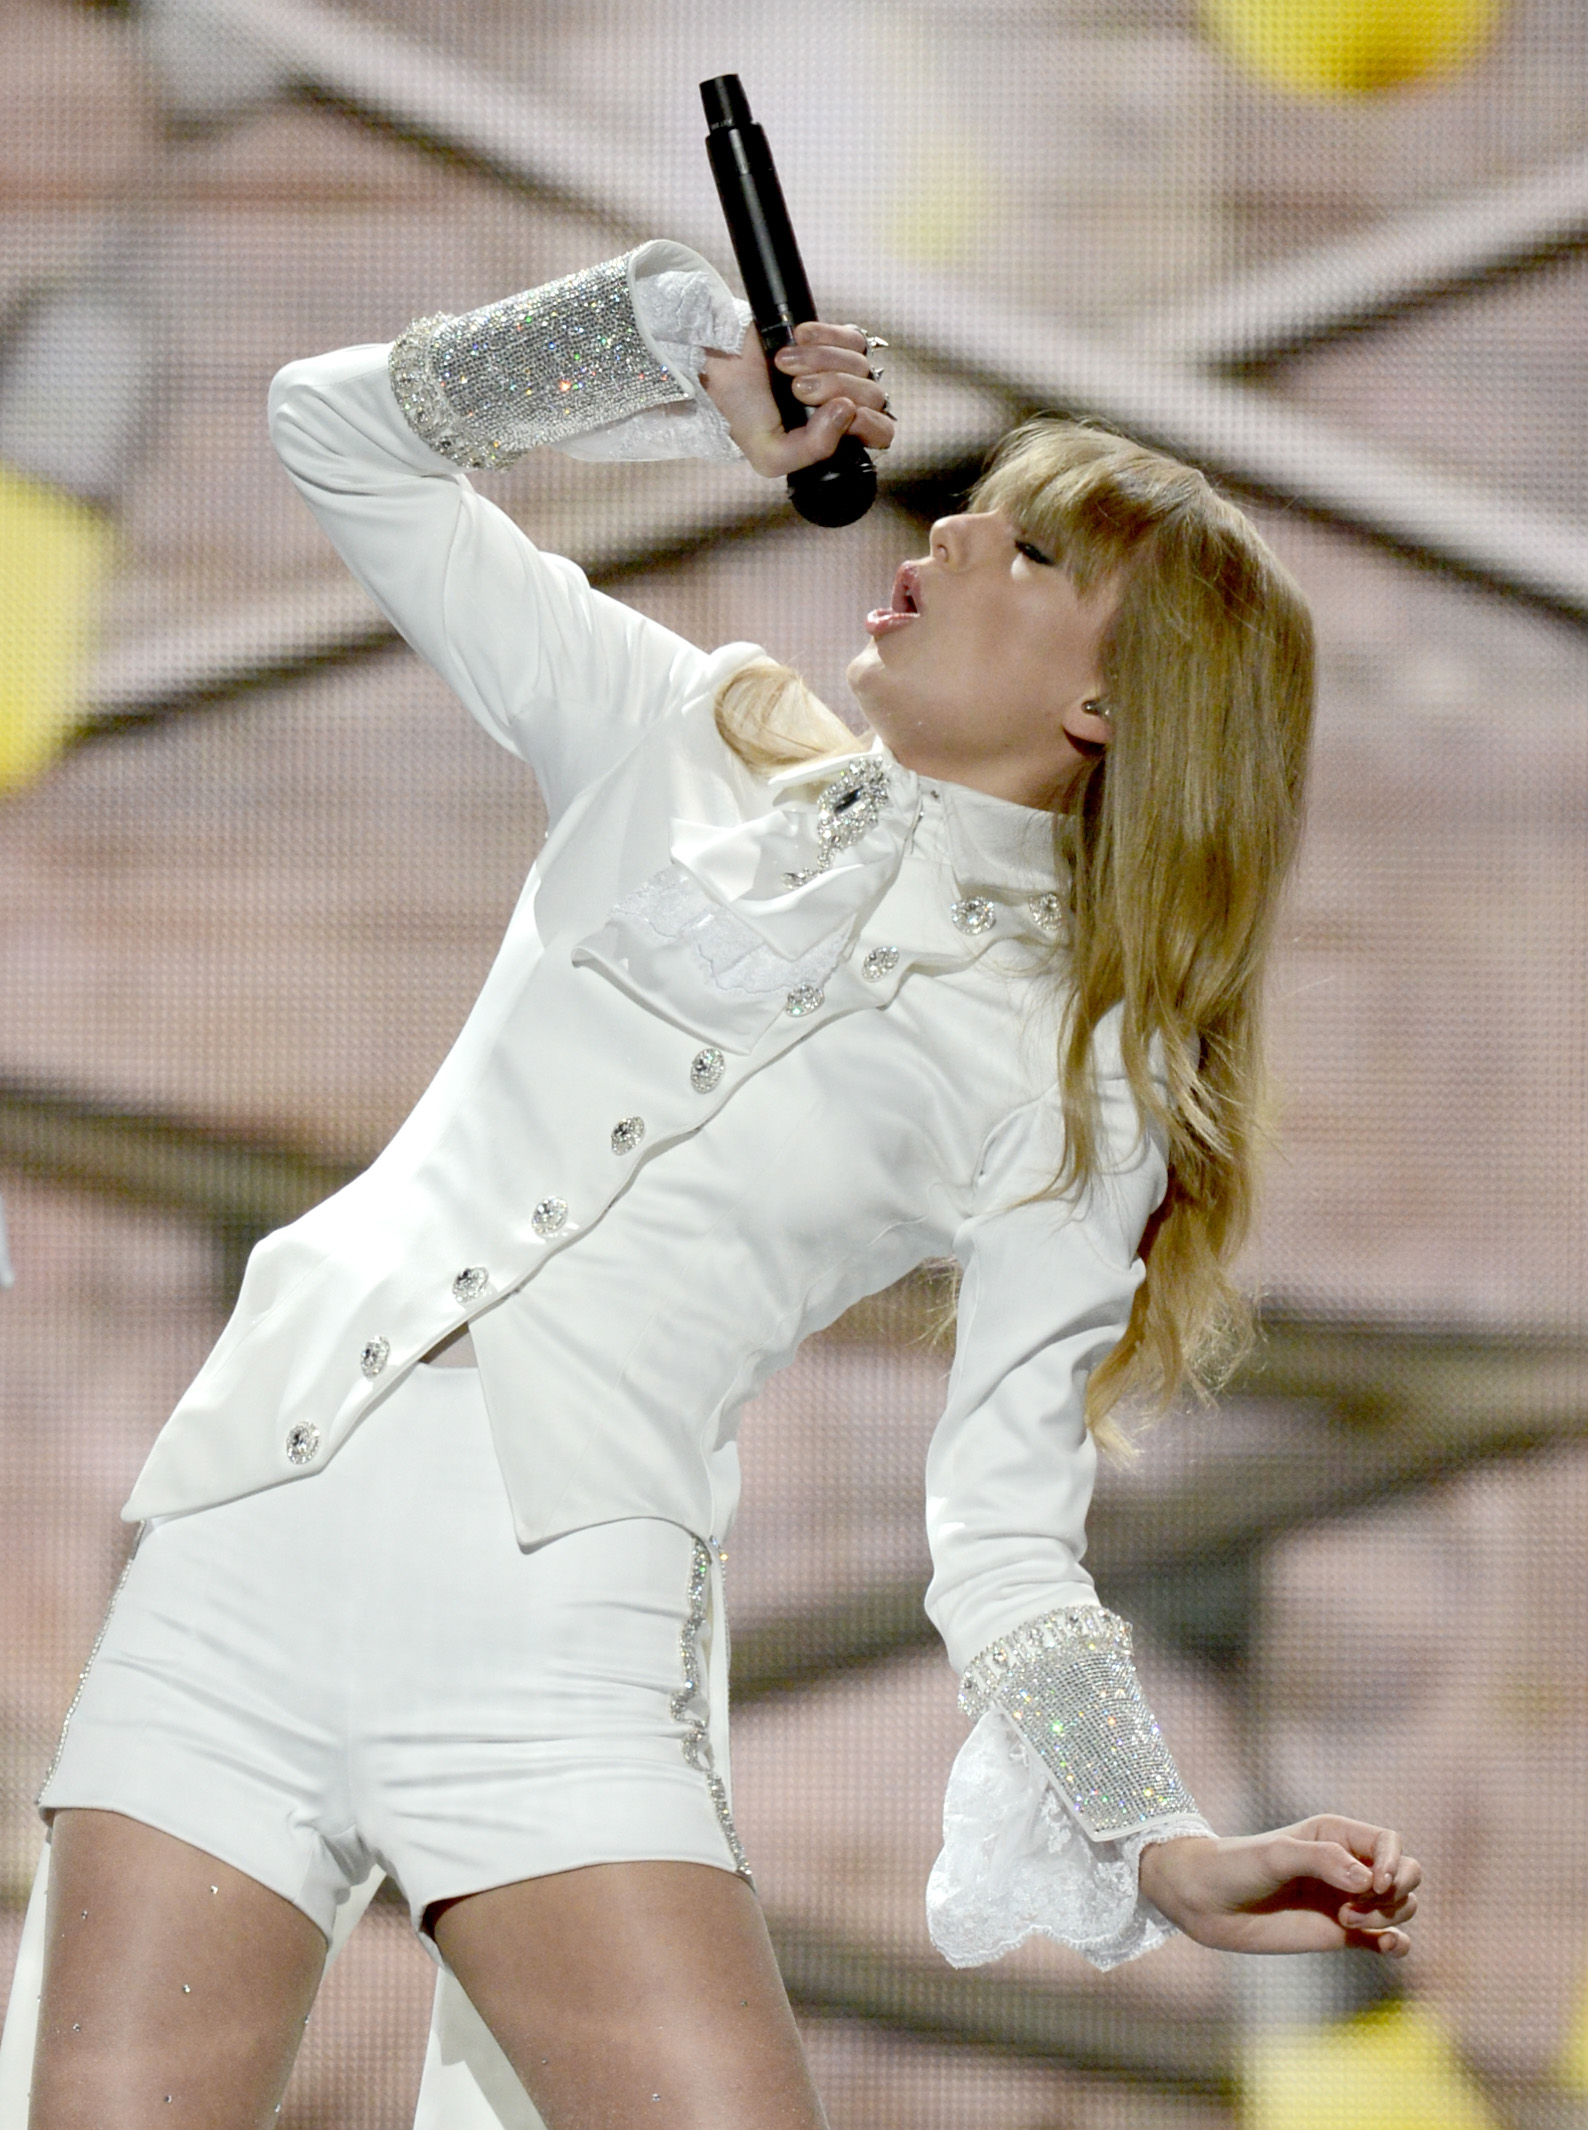 Taylor Swift belted it out on stage.